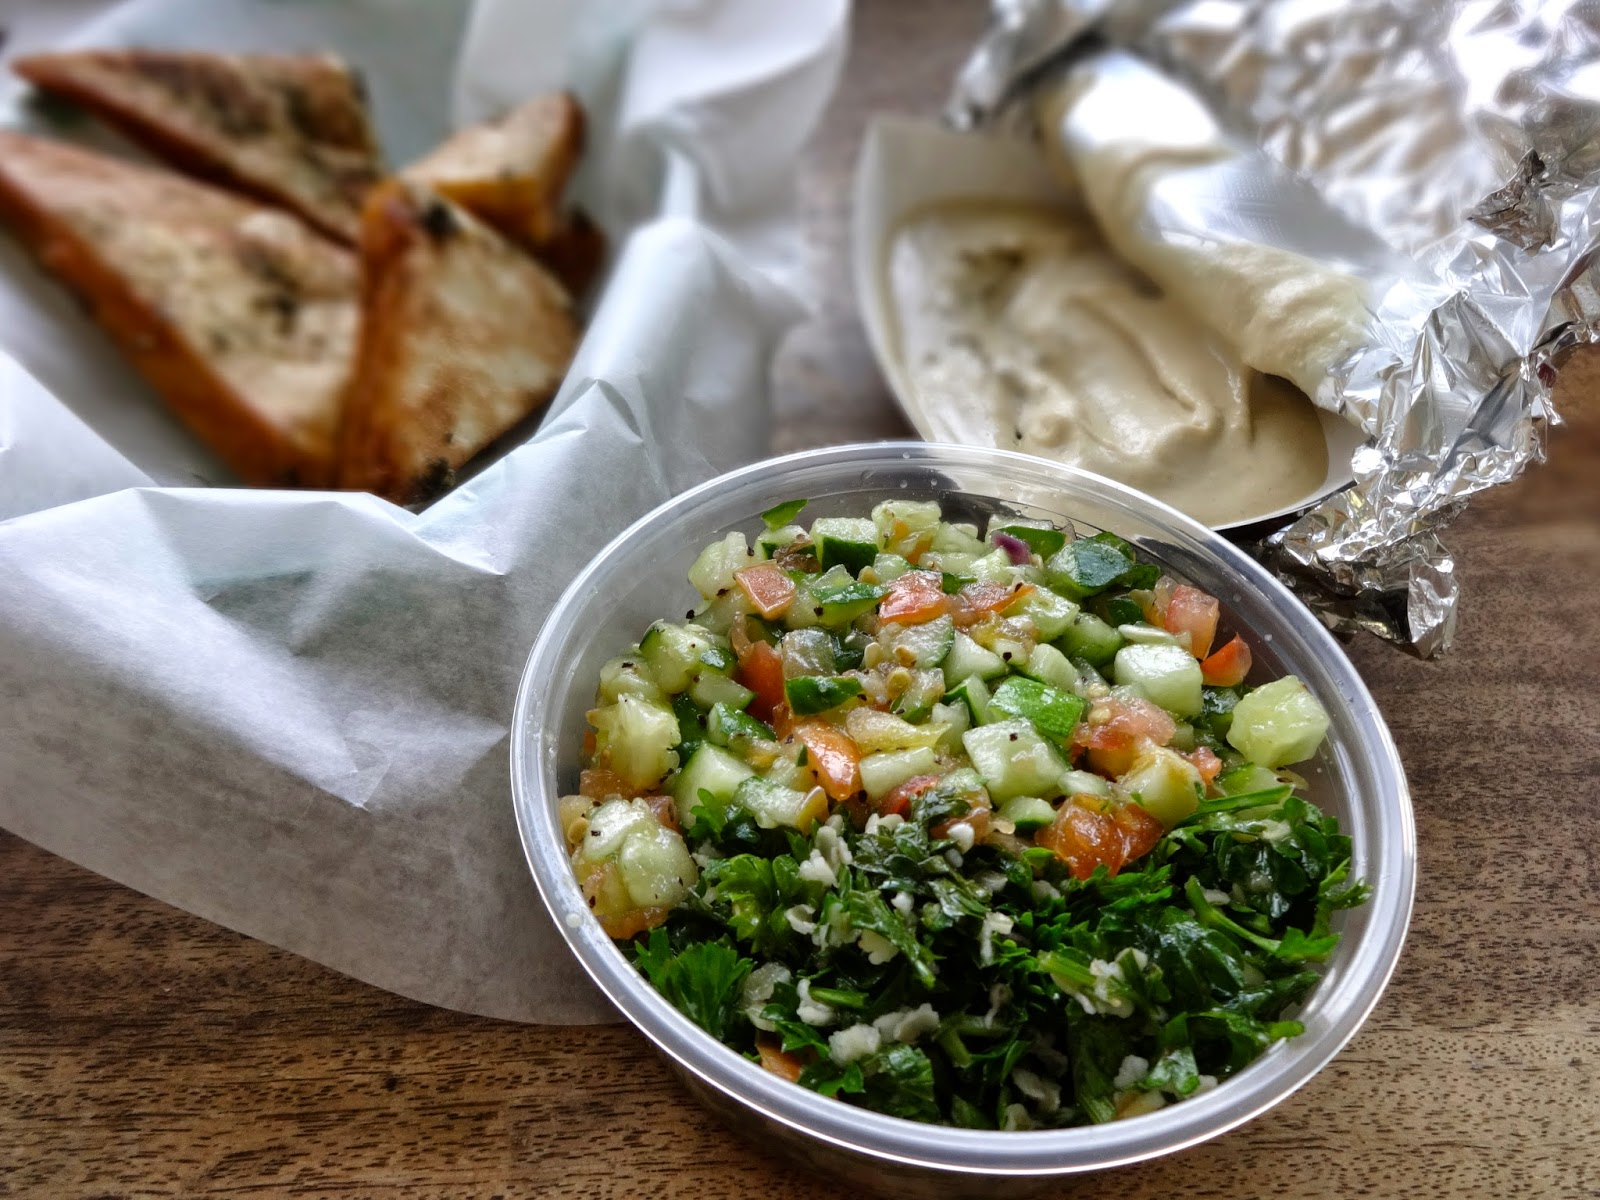 The Fashionably-Forward Foodie: Shaloha Pita